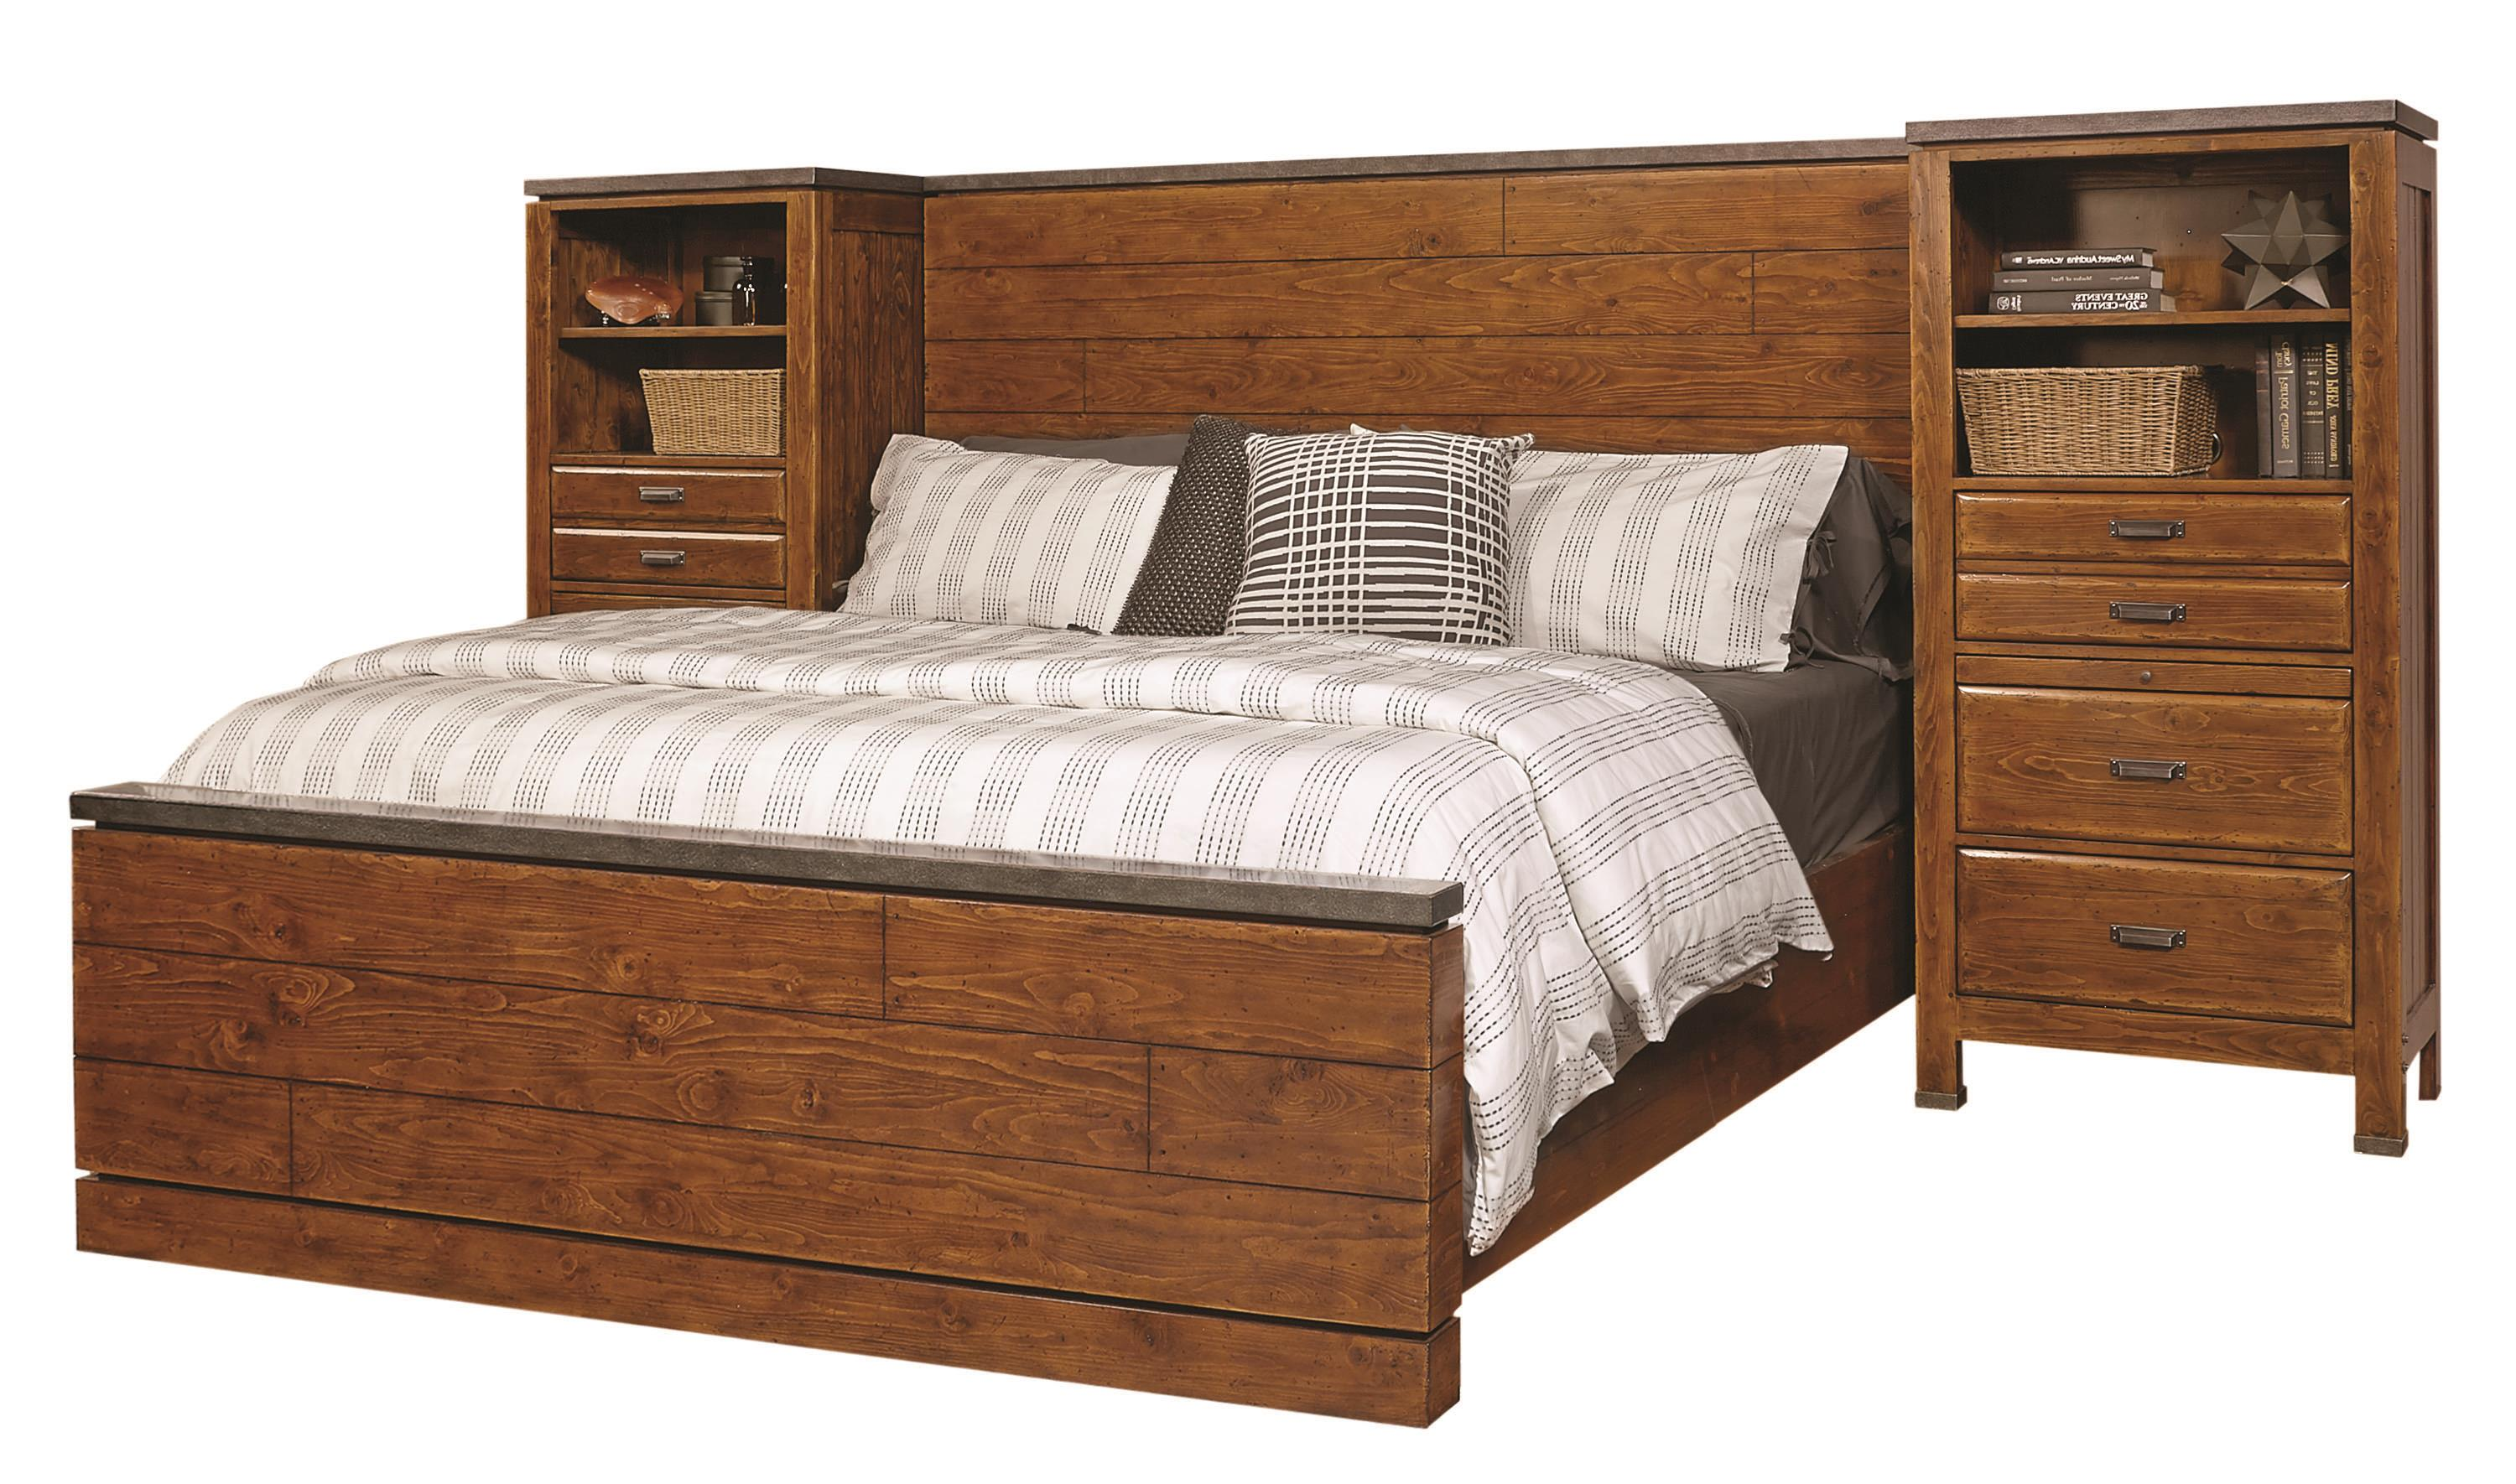 Aspenhome Rockland California King Panel Wall Bed - Item Number: I58-495+496+410+2x487